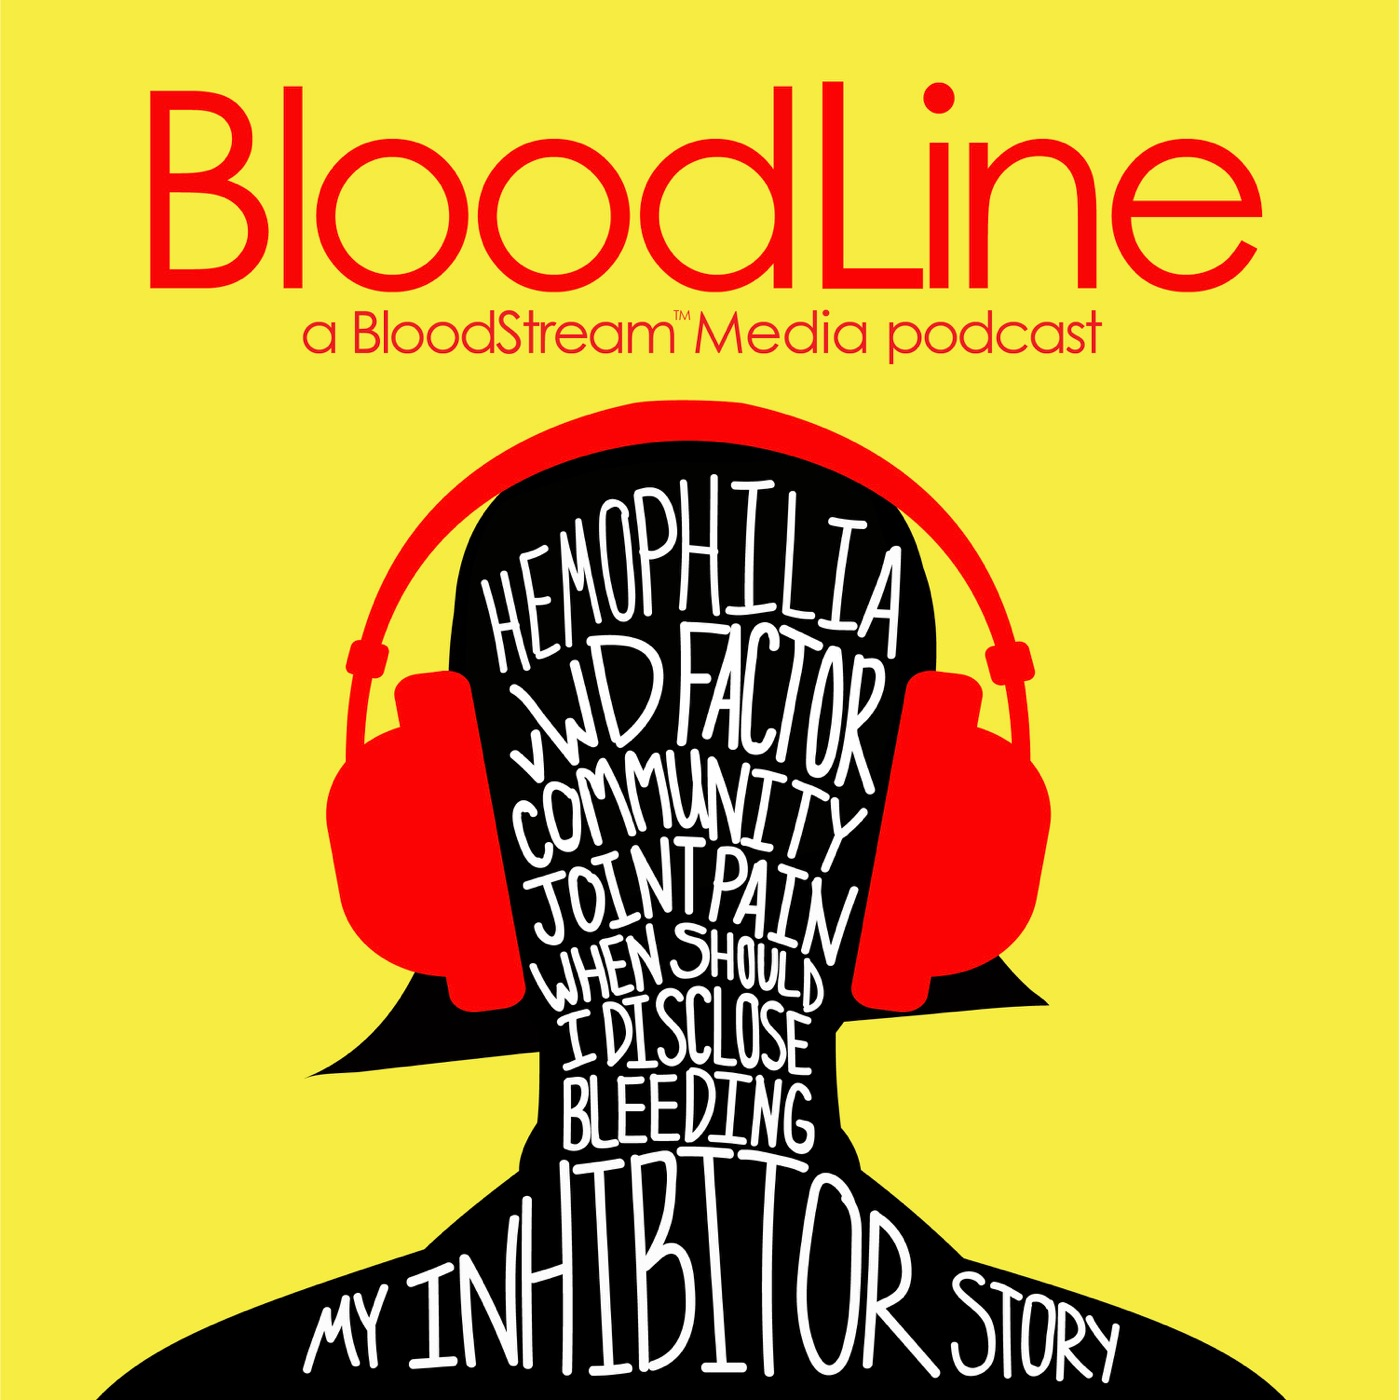 BloodLine  is our long-form nonfiction storytelling podcast. Each series is three episodes, running around 90 minutes in total, taking a deep-dive look at an issue of critical importance to the bleeding disorders community, featuring community voices from around the nation and the world. Think: a documentary film, but in audio form! Created and produced by  Believe Limited  for  BloodStream Media.